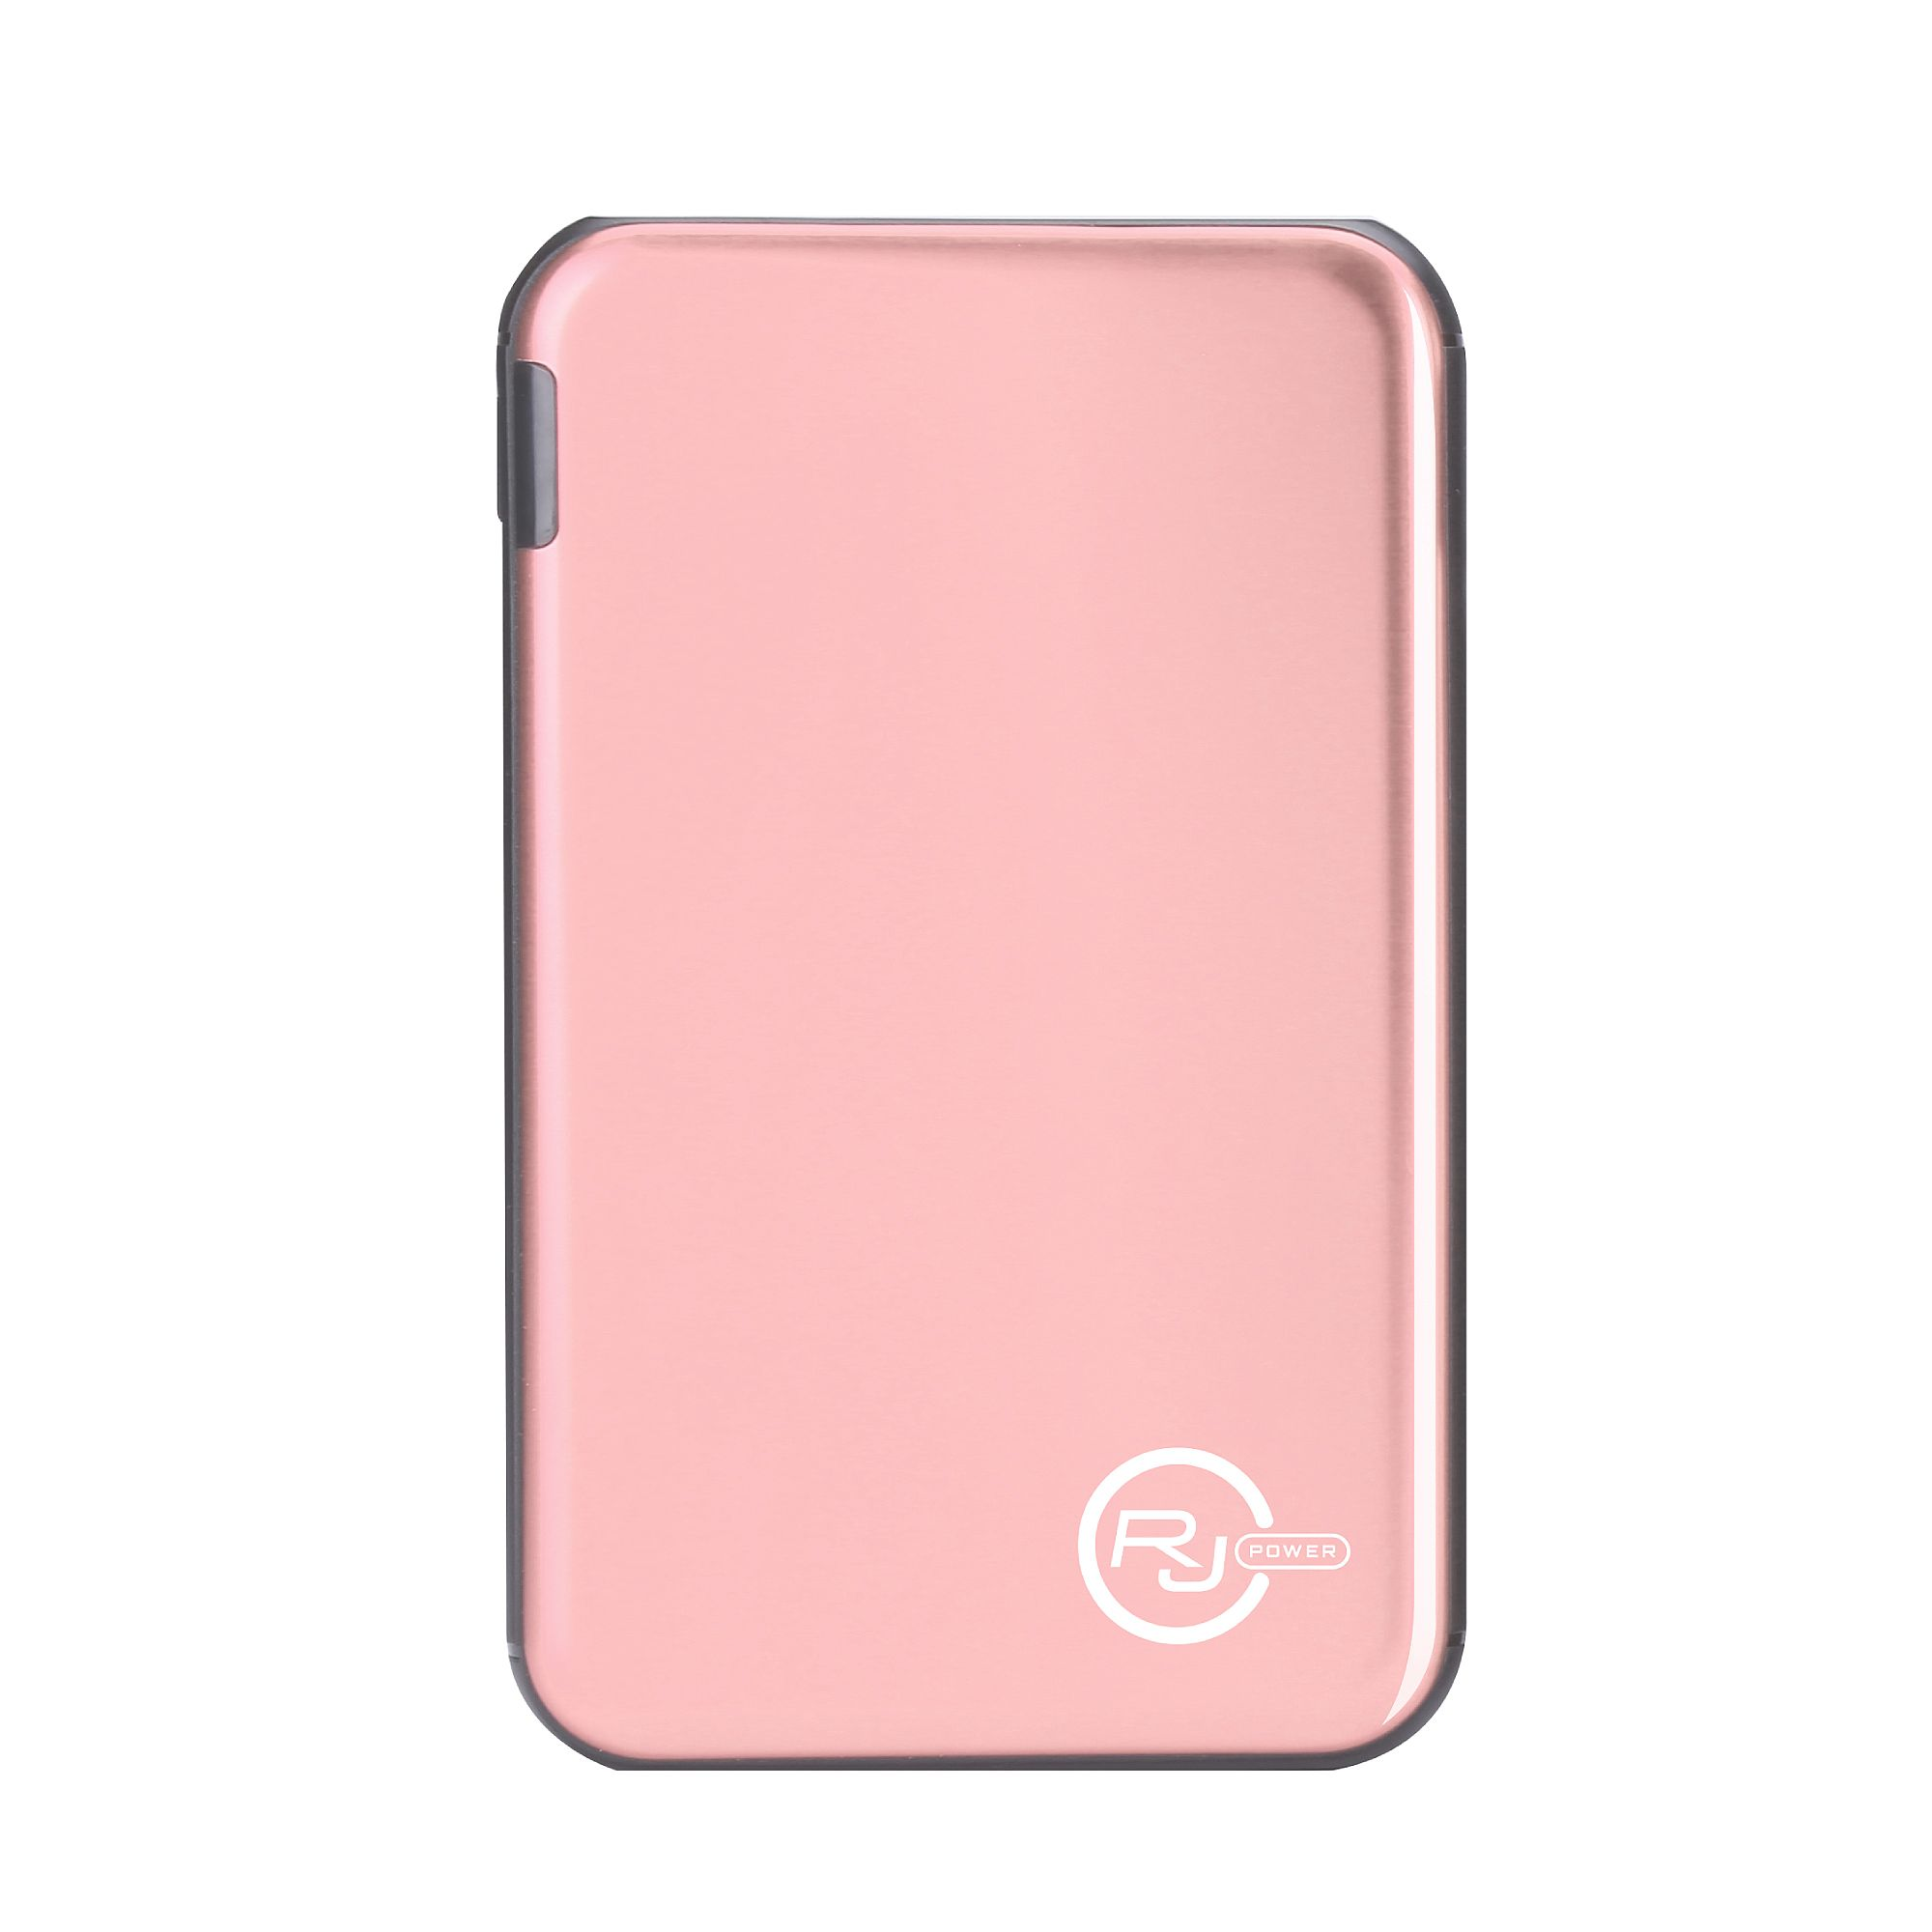 RJ Power 5,000mah Ultra Slim Metallic Portable Power Bank - Rose Gold